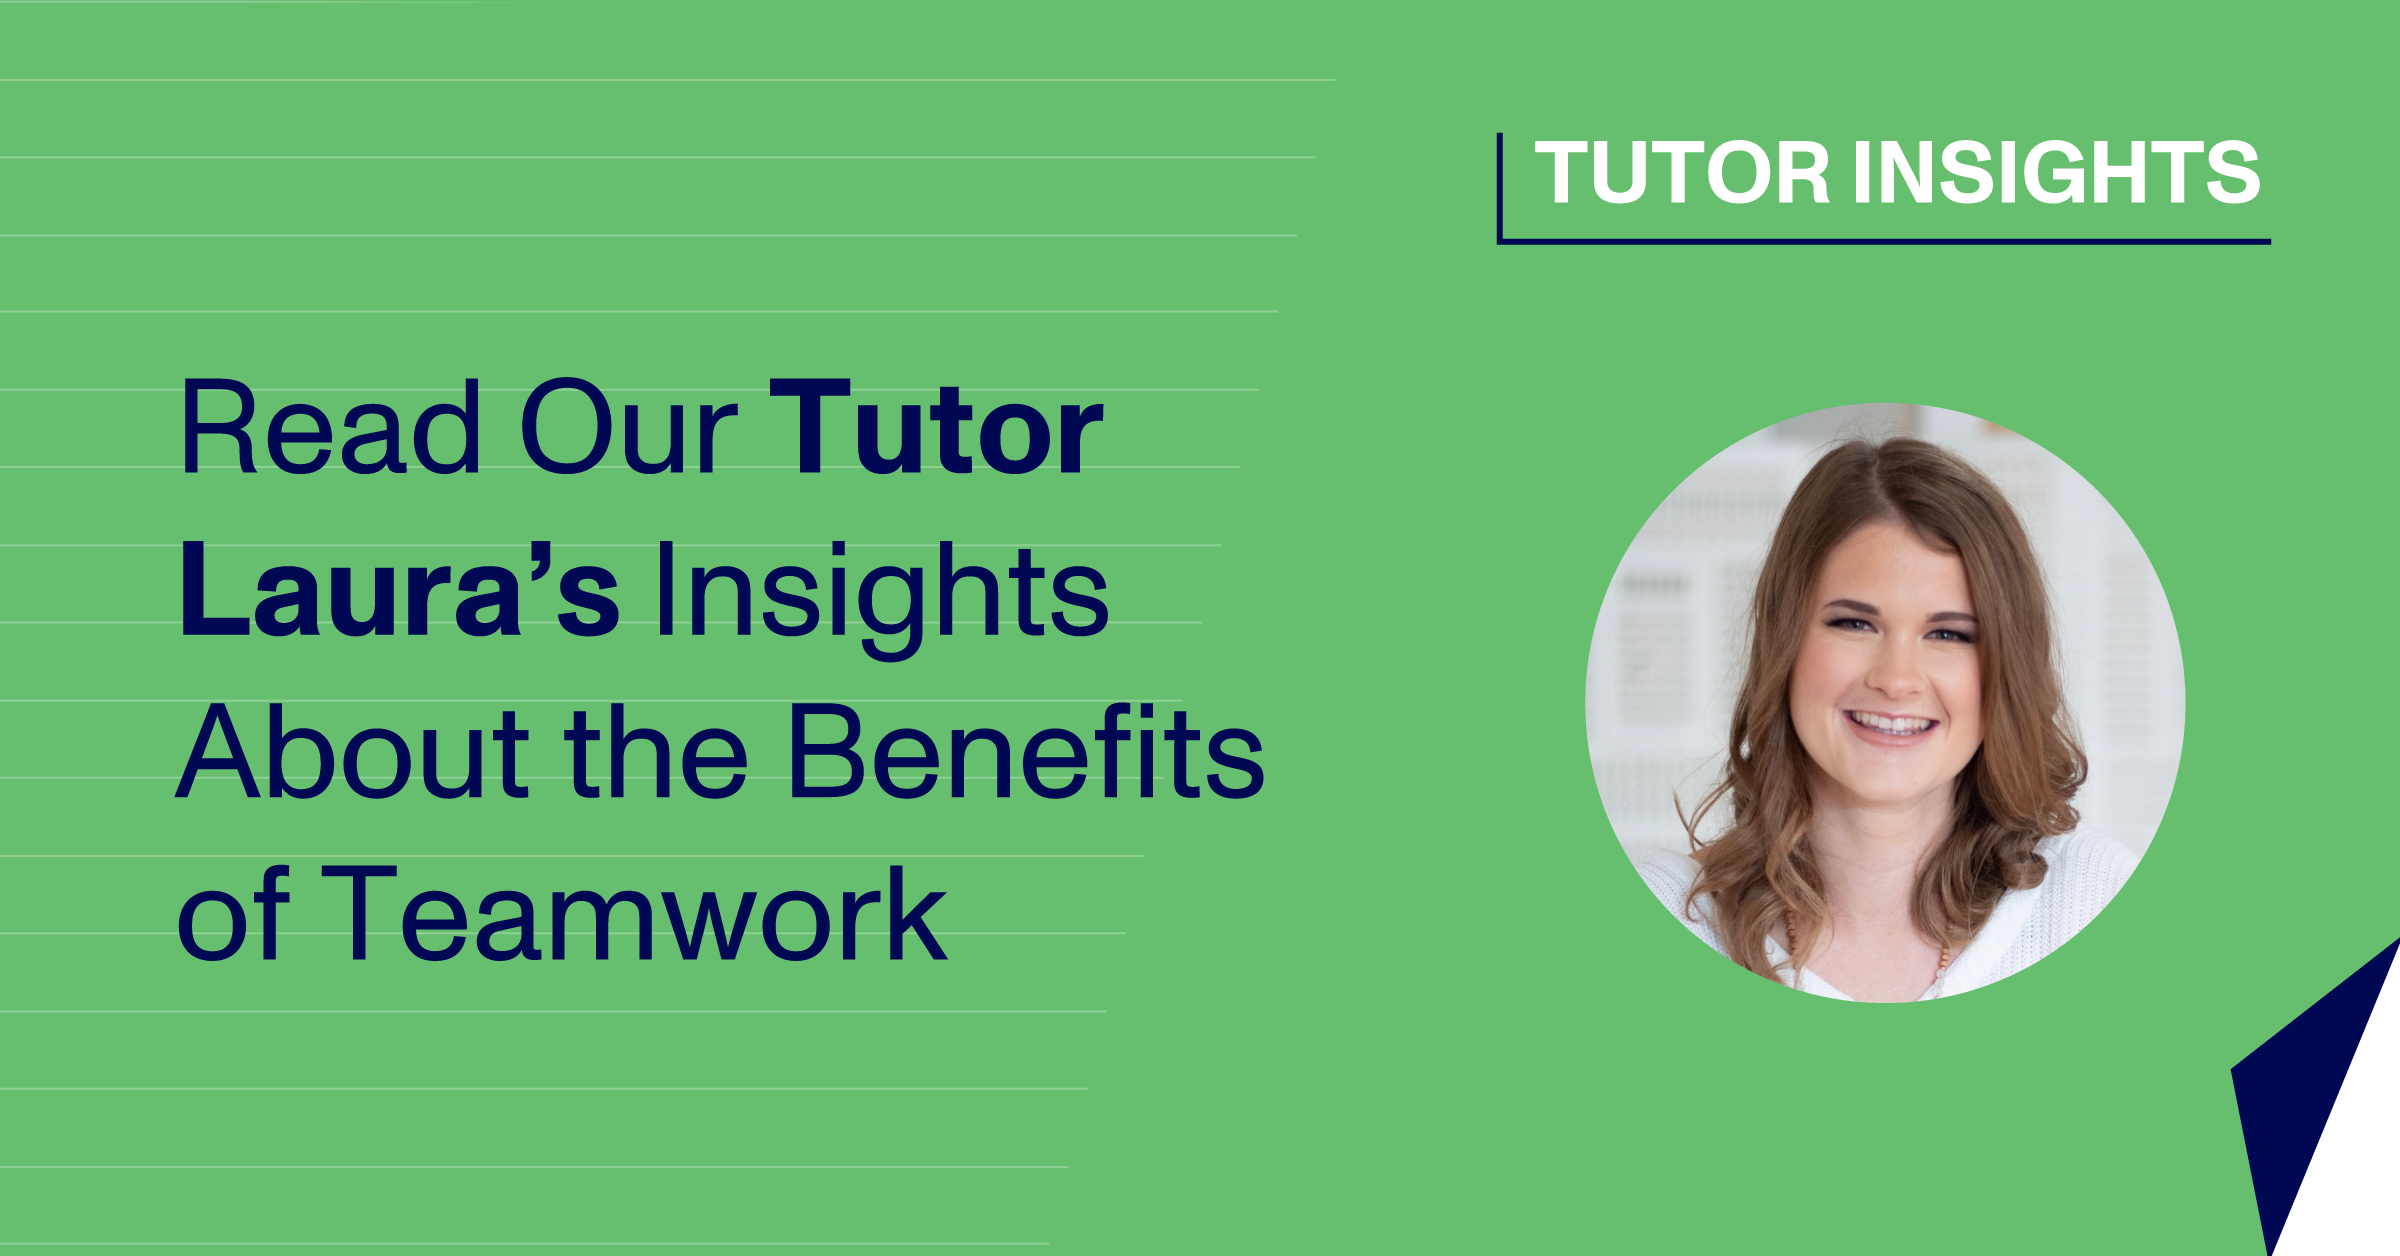 Read Our Tutor Laura's Insights About the Benefits of Teamwork